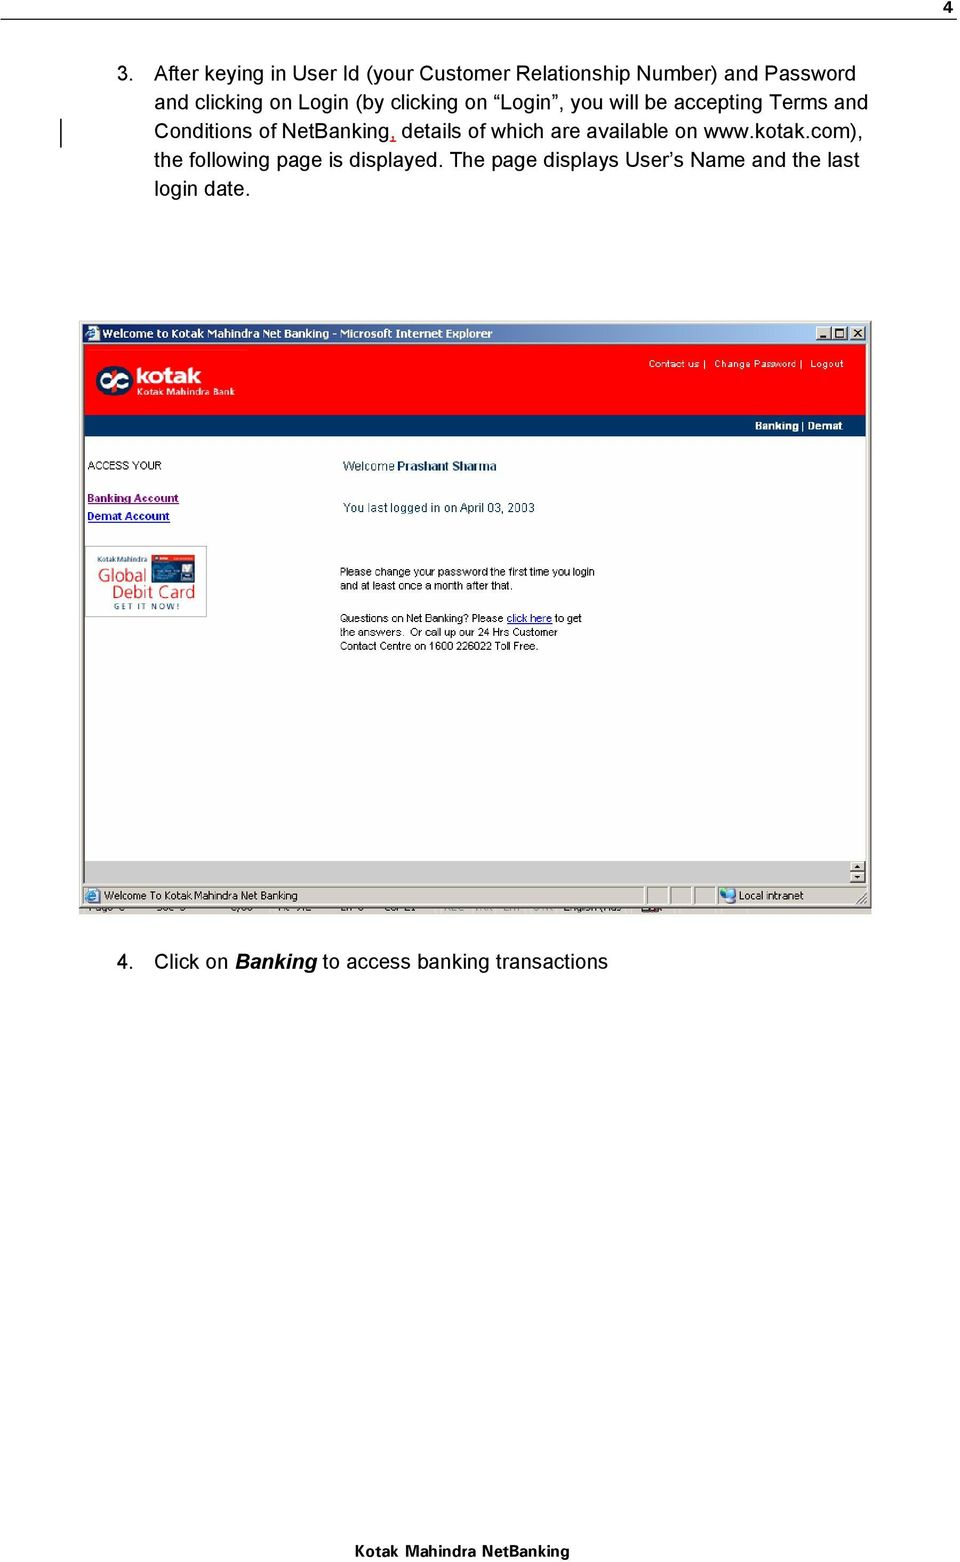 details of which are available on www.kotak.com), the following page is displayed.